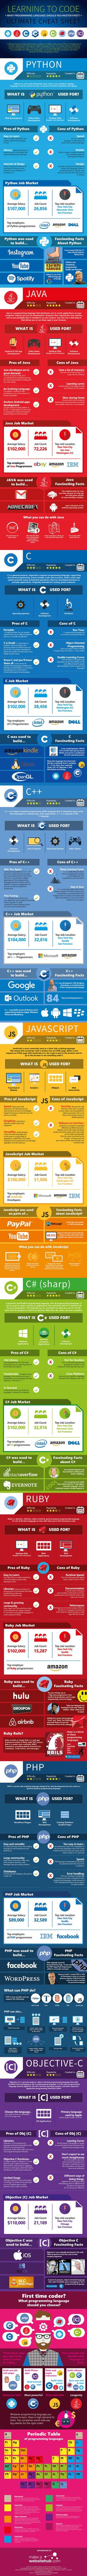 Coding Language Infographic